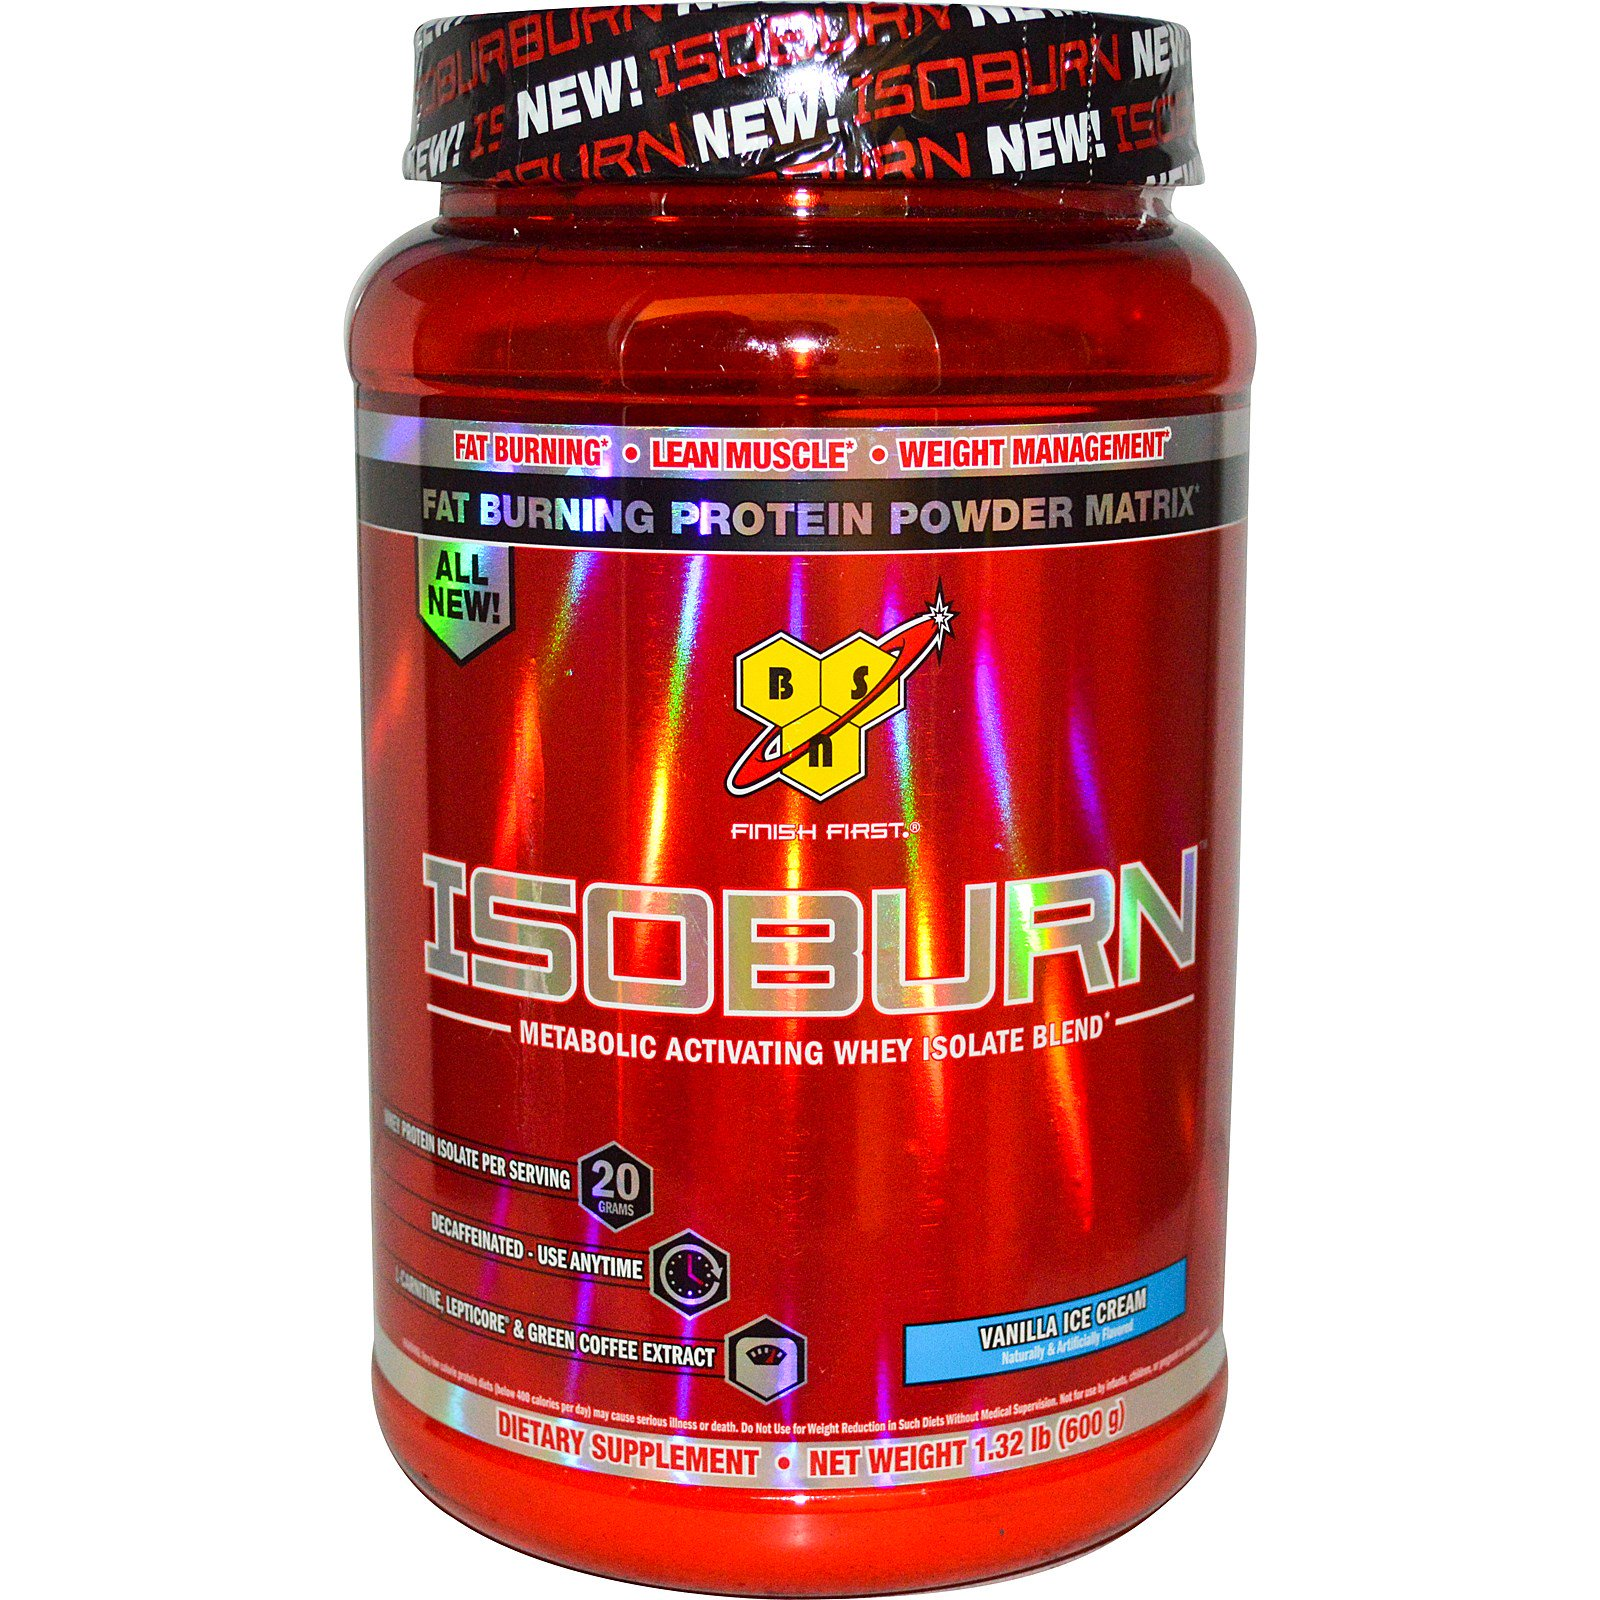 bbb263f69 BSN Isoburn Metabolic Activating Whey Isolate Blend Vanilla Ice ...